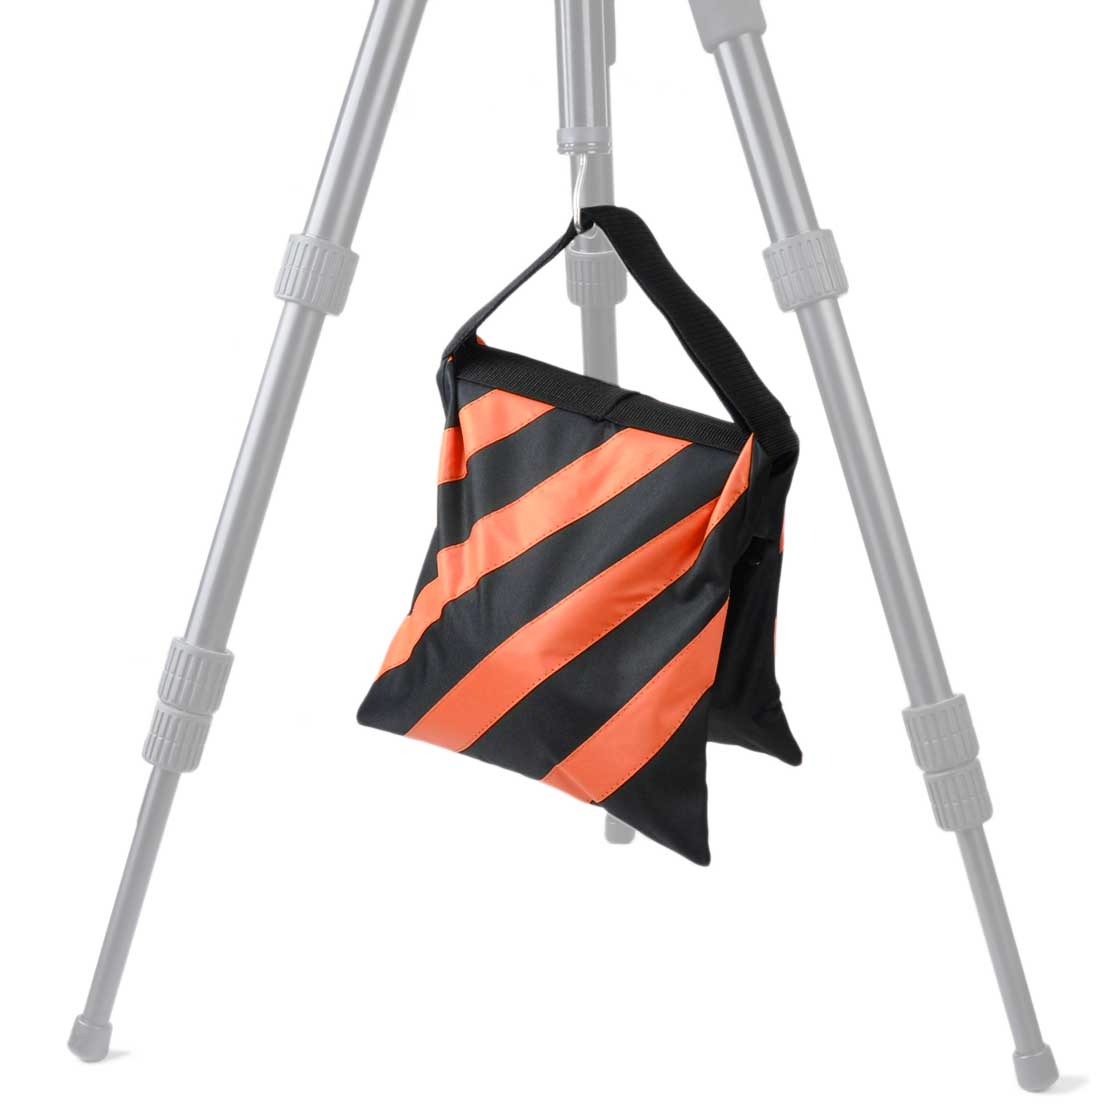 Photo Studio Video Counter Balance Weight Sandbag For Outdoor Stage Flash Light Stand Boom Camera Tripod